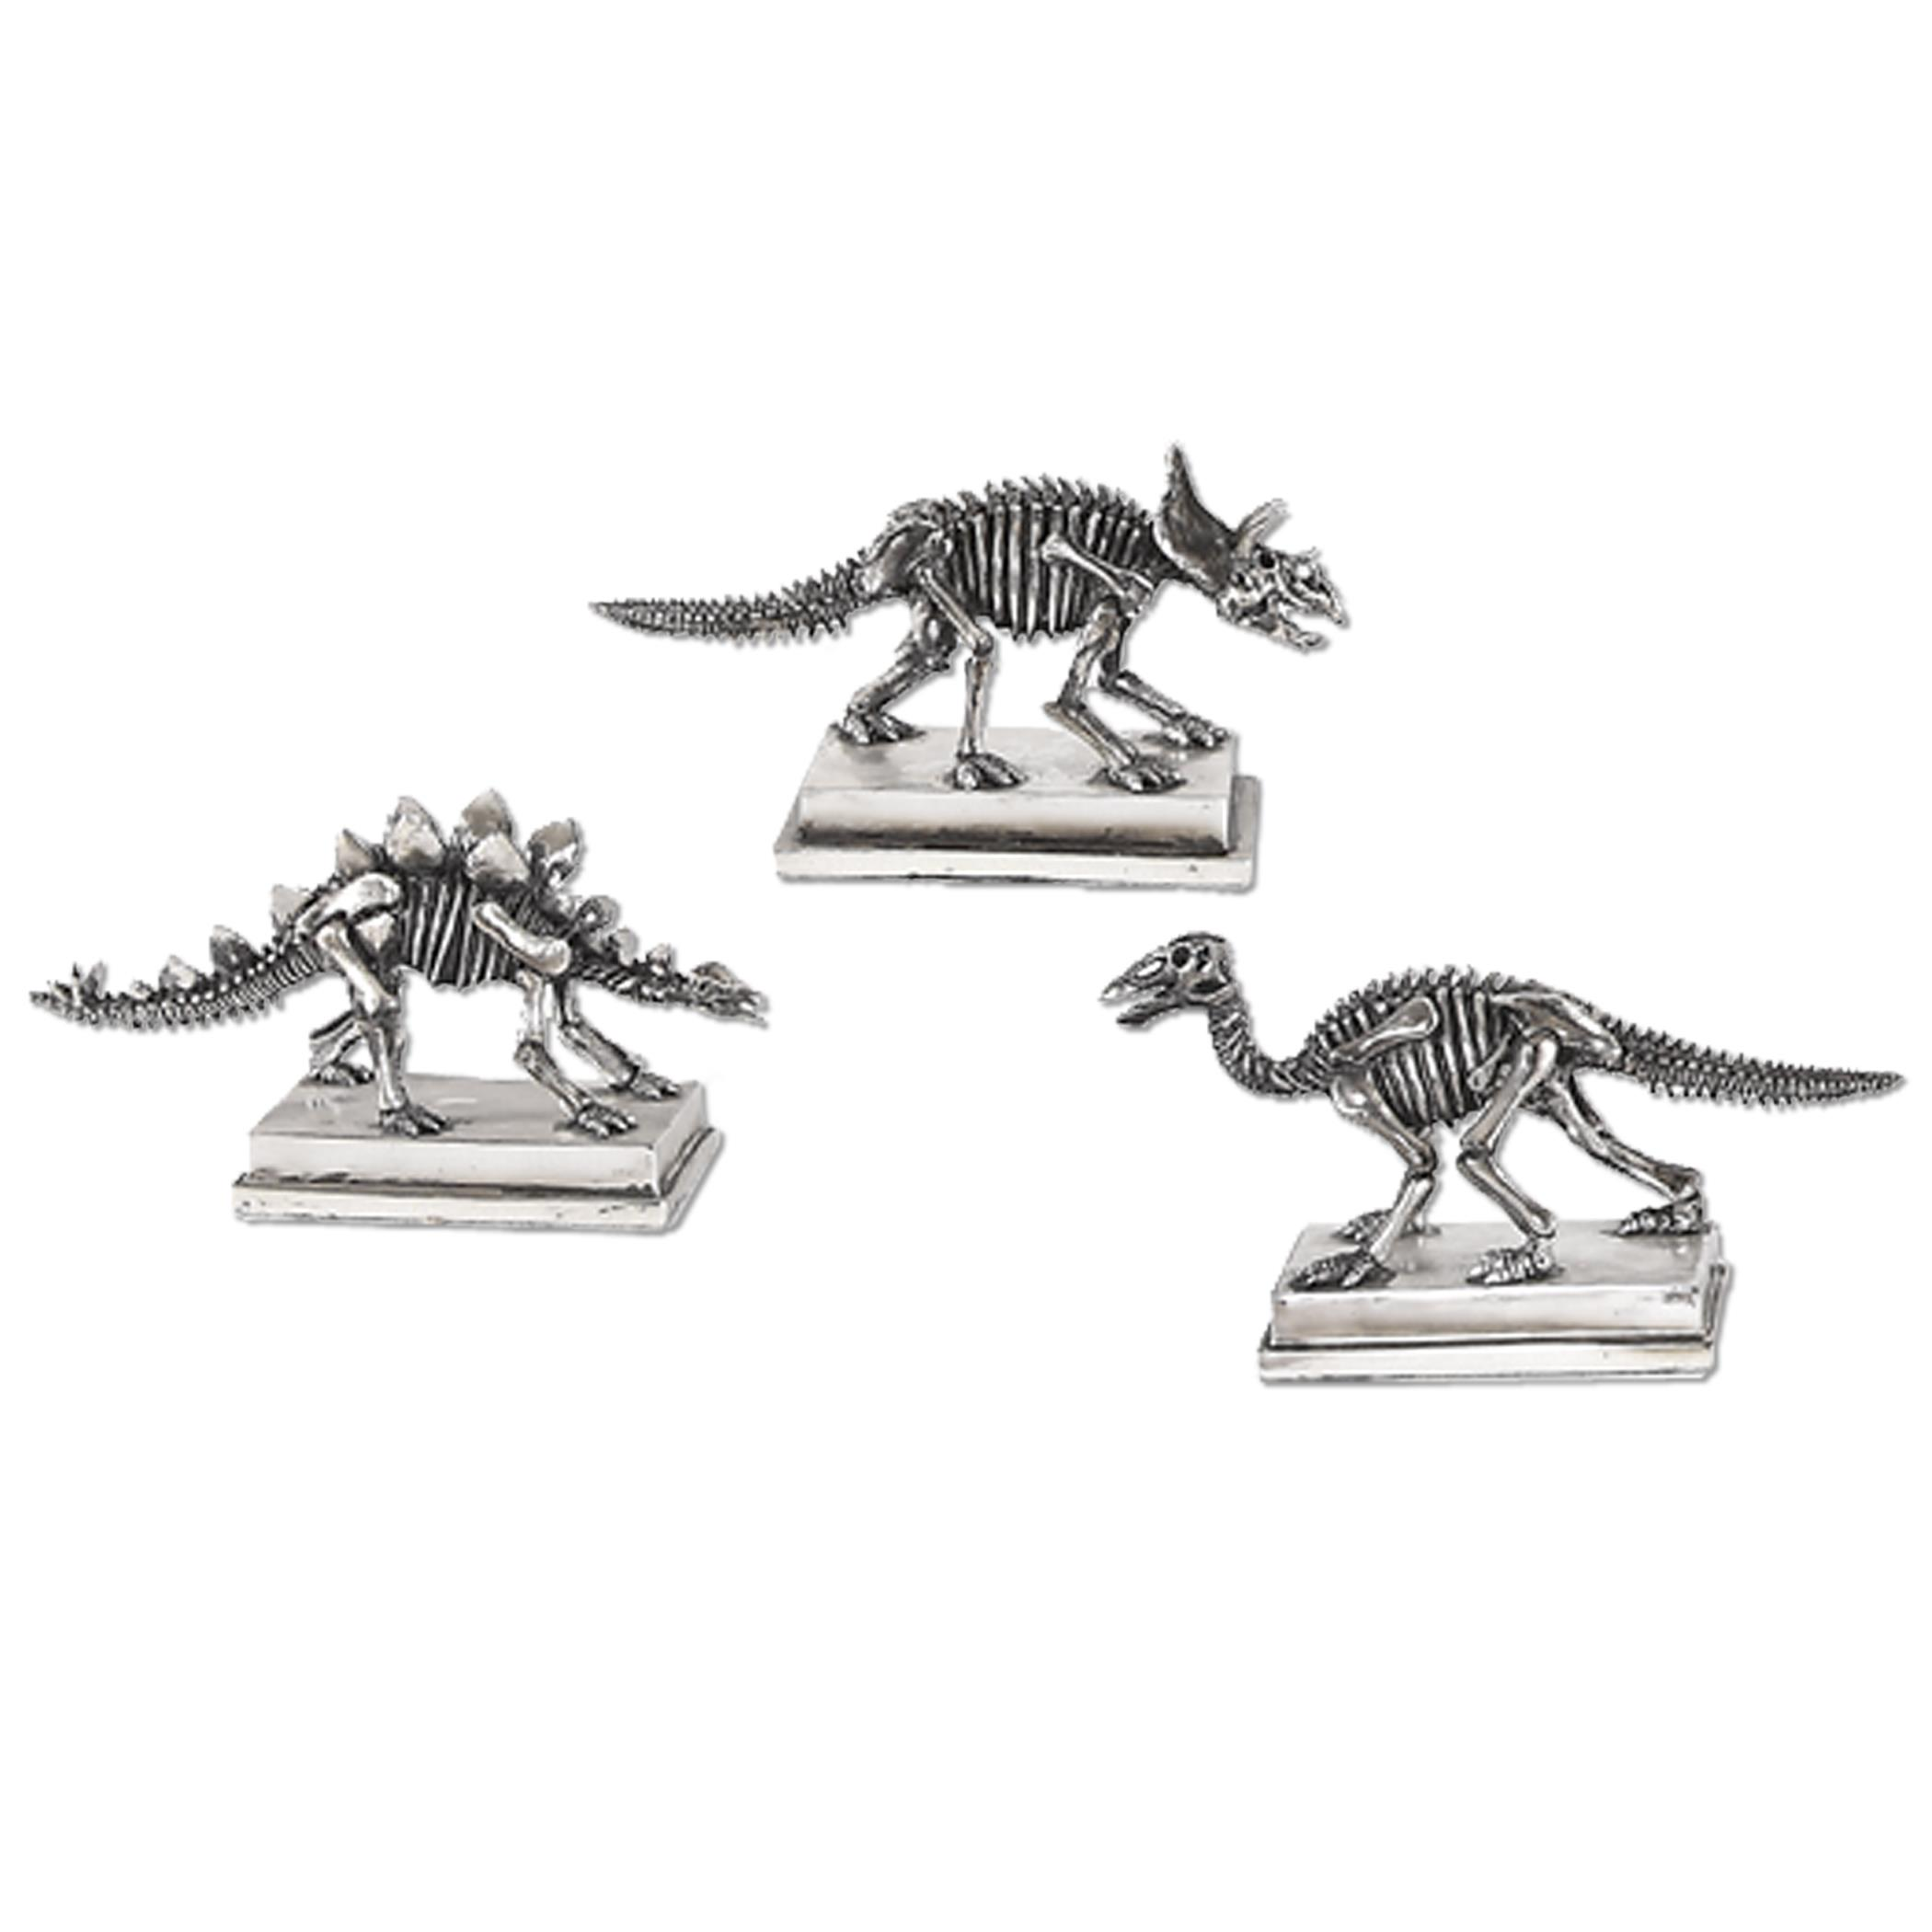 Uttermost Accessories Jurassic Silver Figures, S/3 - Item Number: 19981